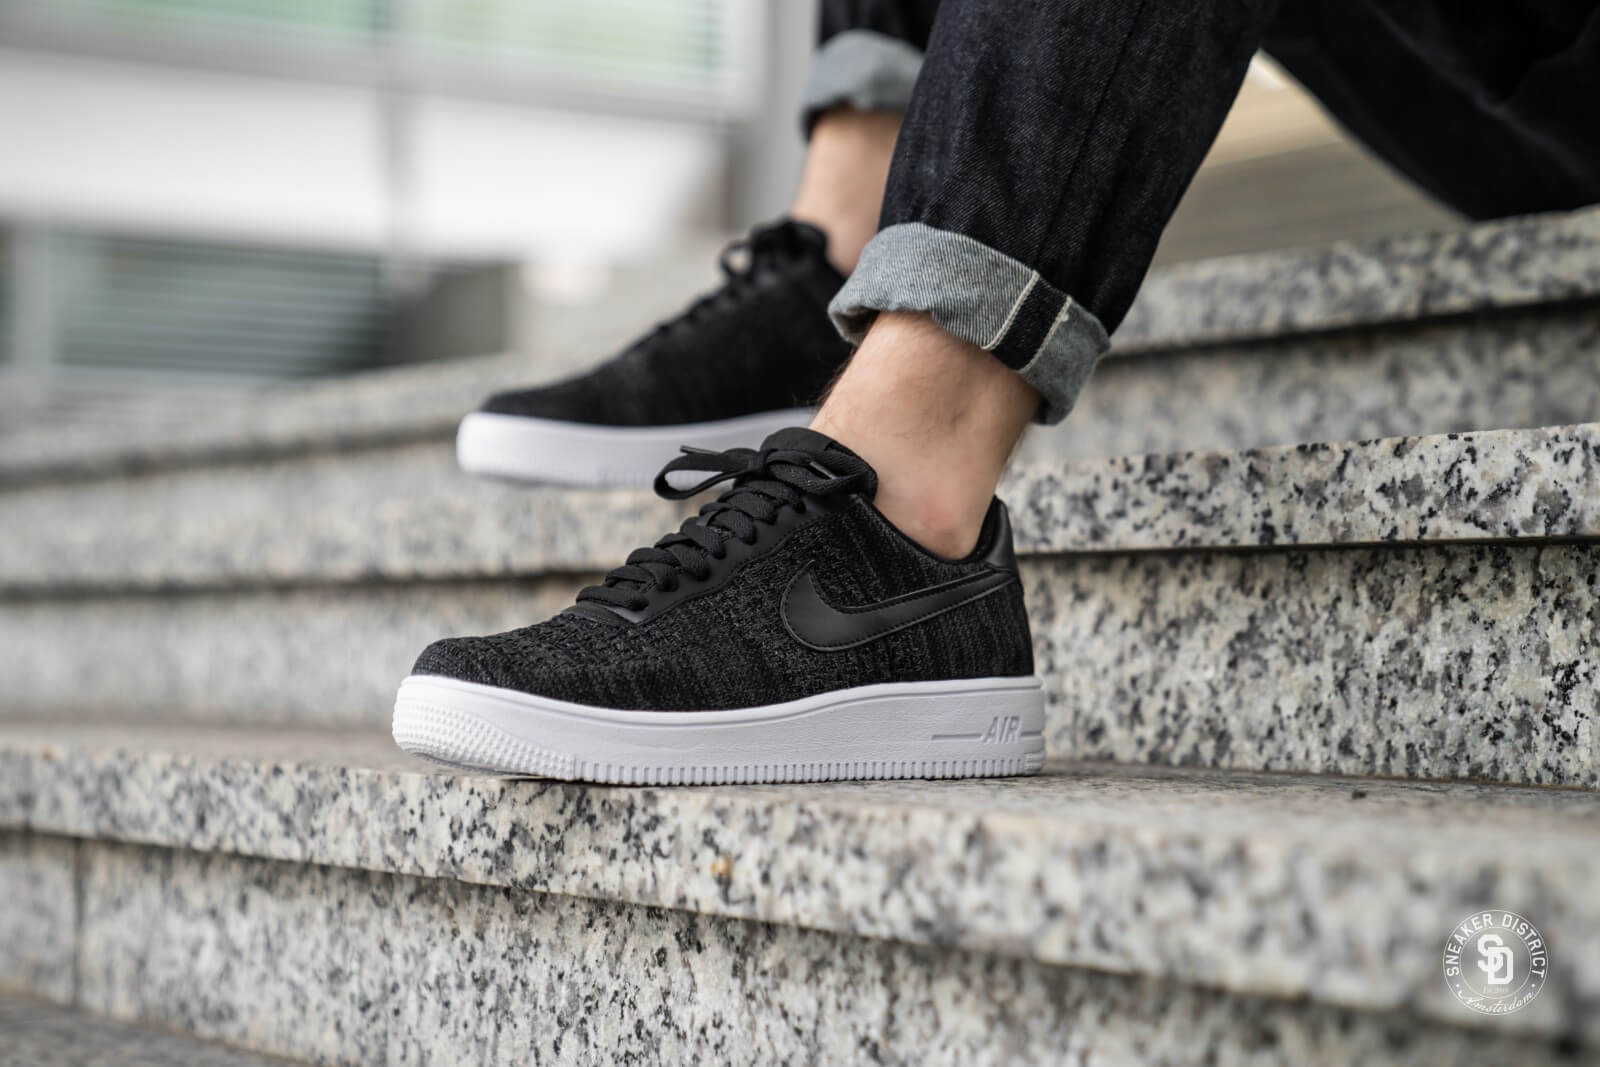 Nike Air Force 1 Flyknit 2.0 Black/White-Anthracite